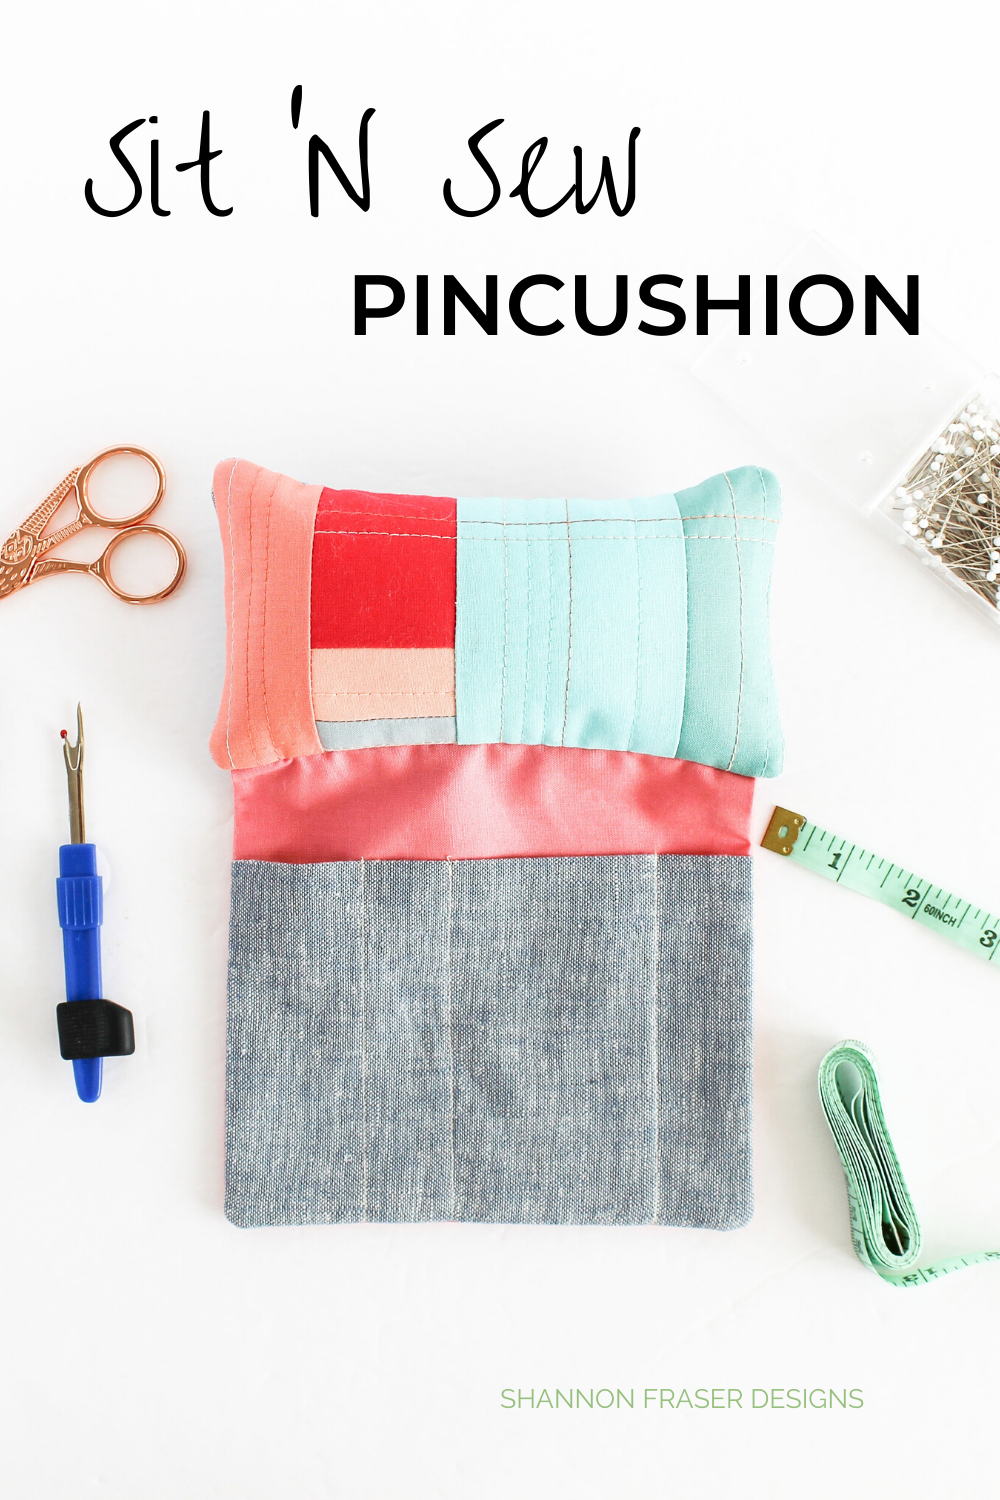 Sit 'n Sew Pincushion with sewing notions scattered around | Sit 'N Sew Pincushion Pattern | Shannon Fraser Designs